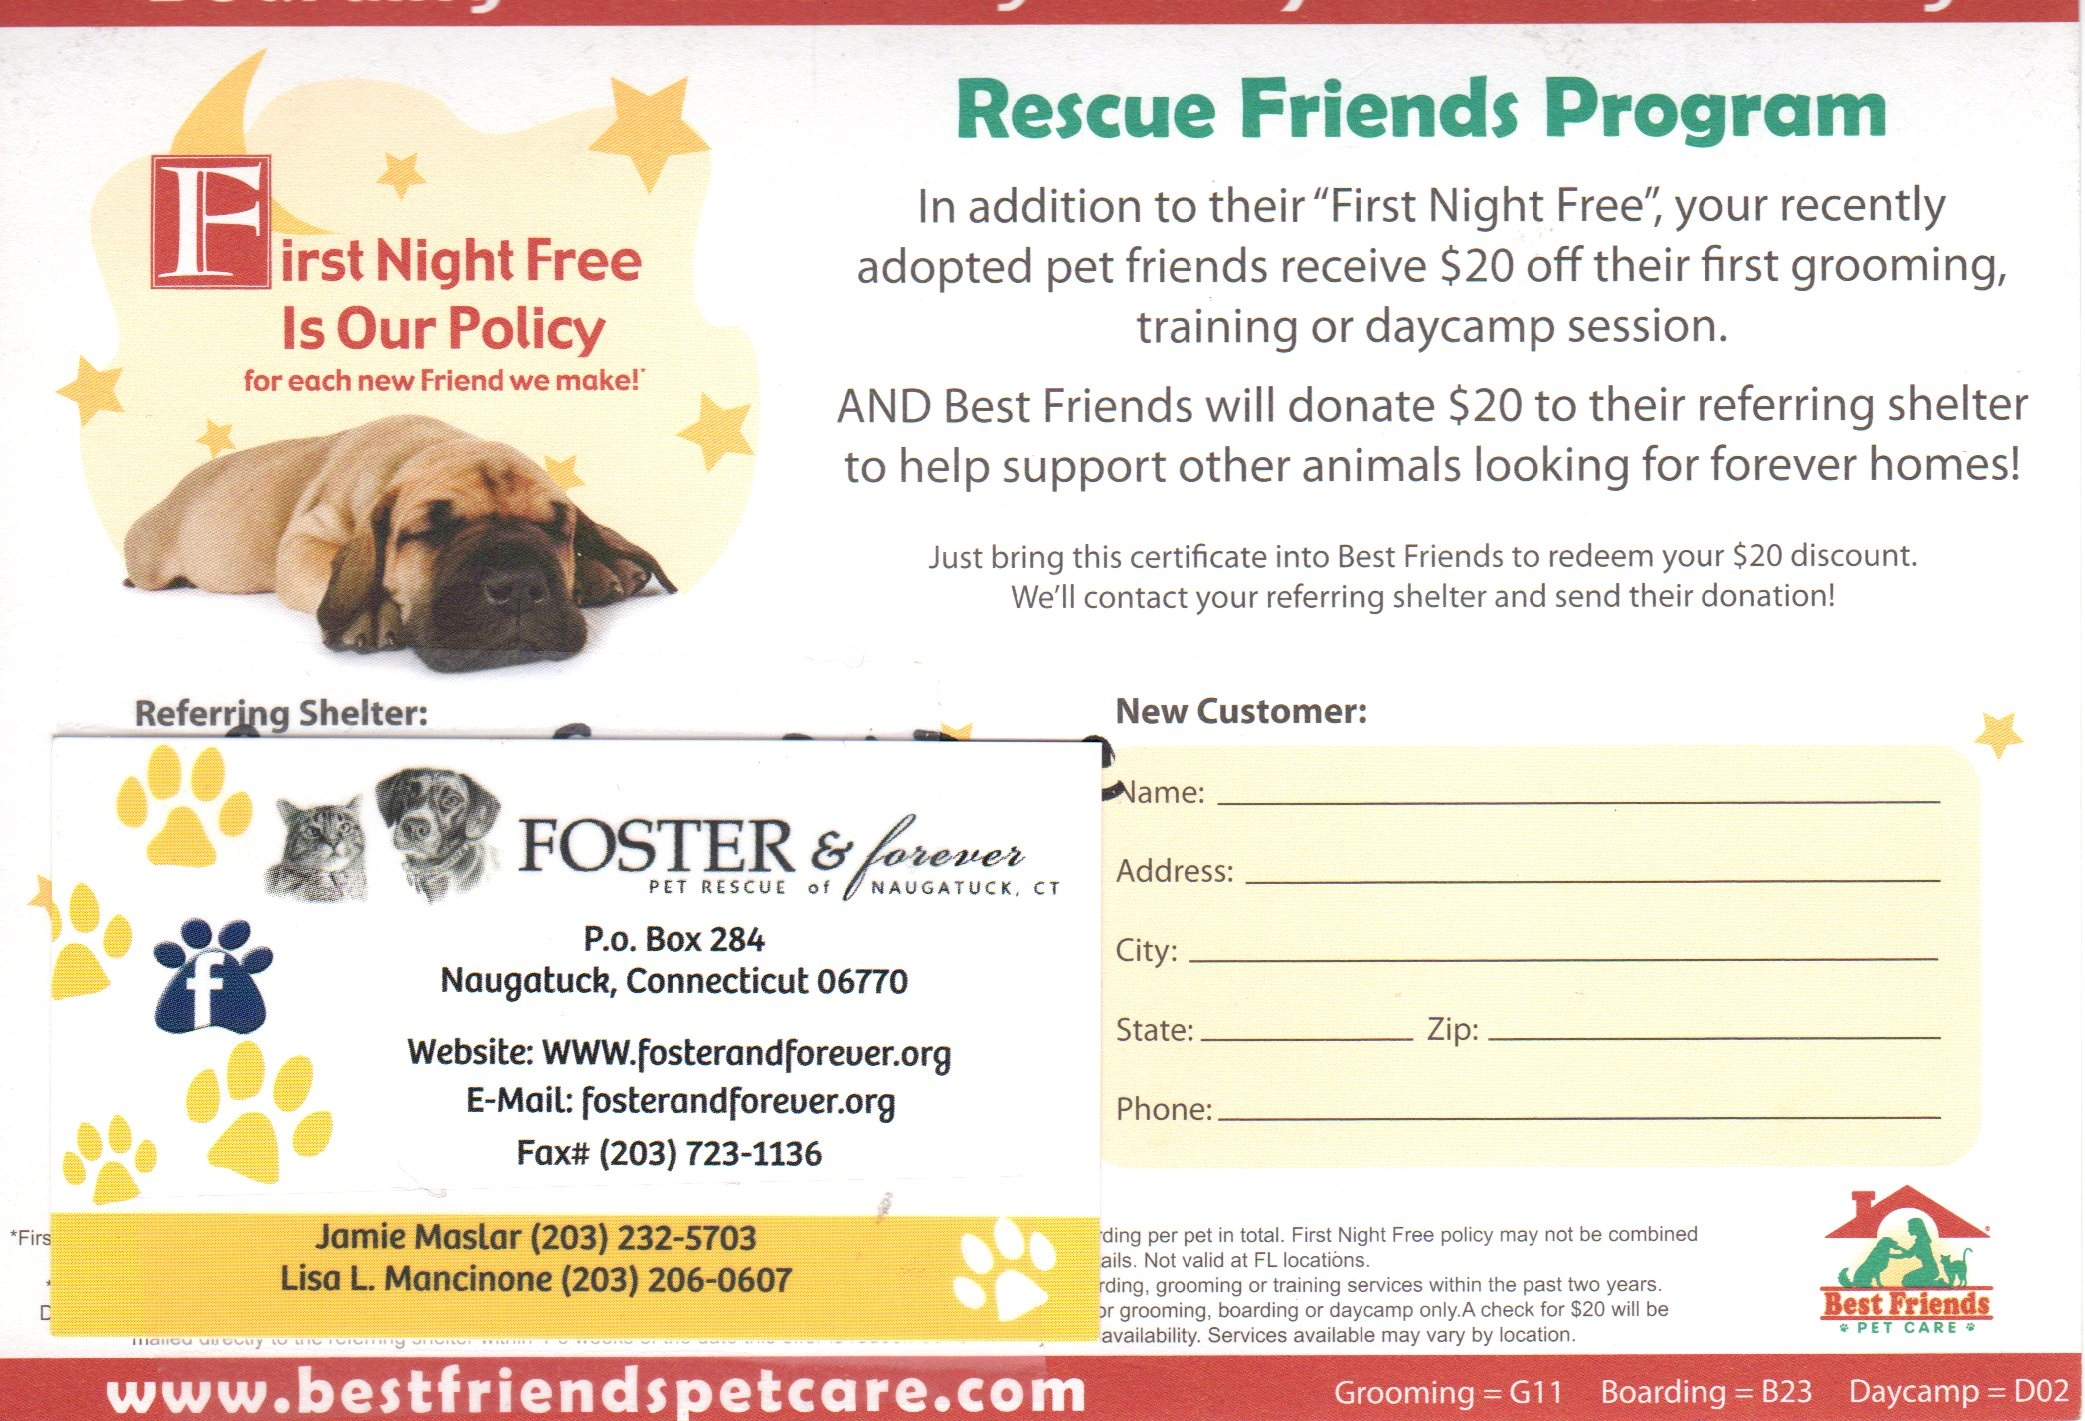 How Can You Help? – Foster and Forever Pet Rescue